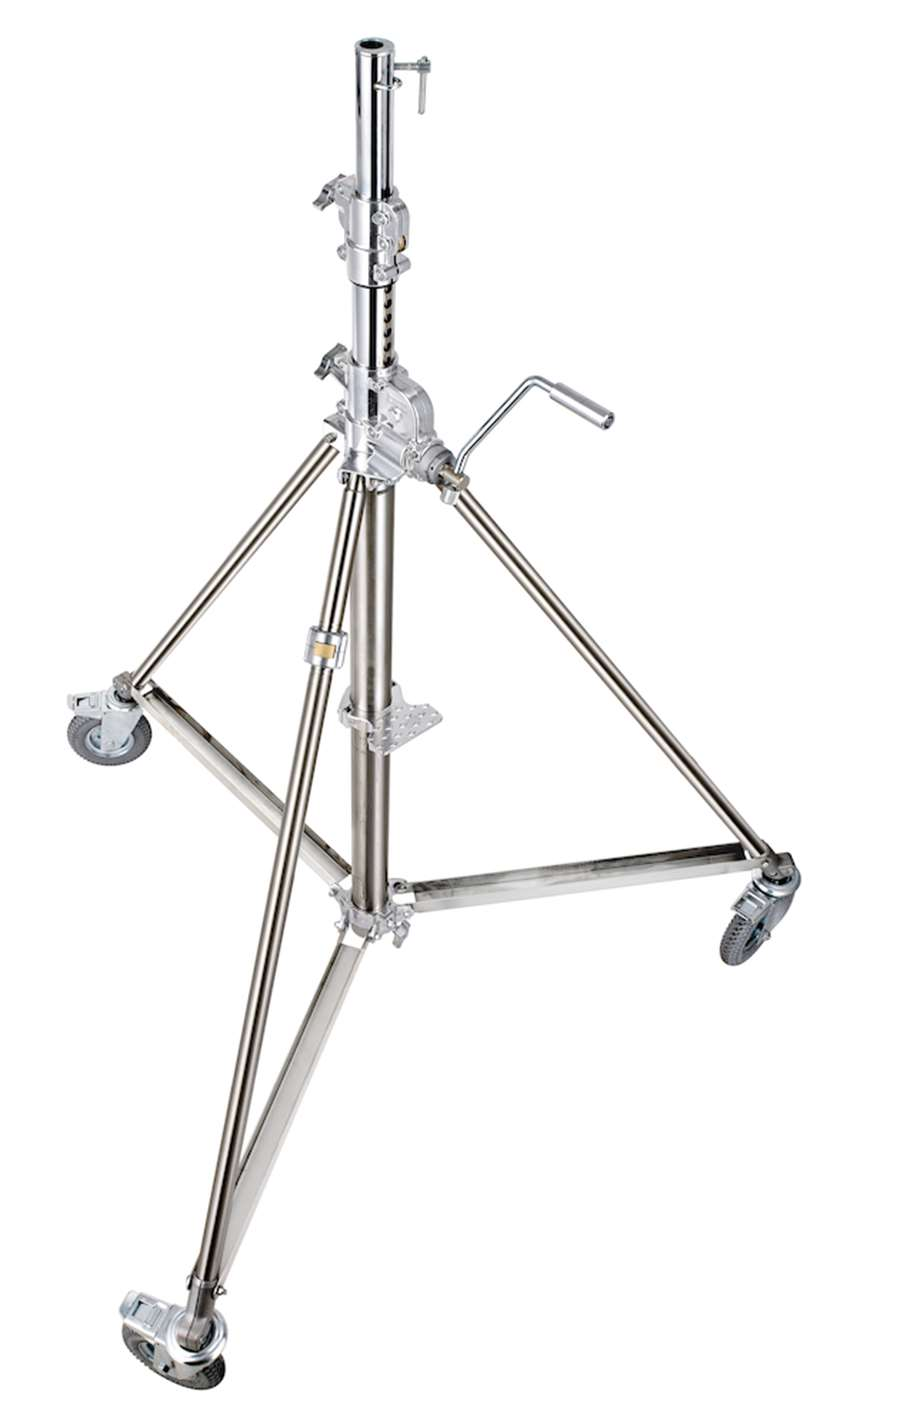 super wind up stainless steel stand - 172  386 cm